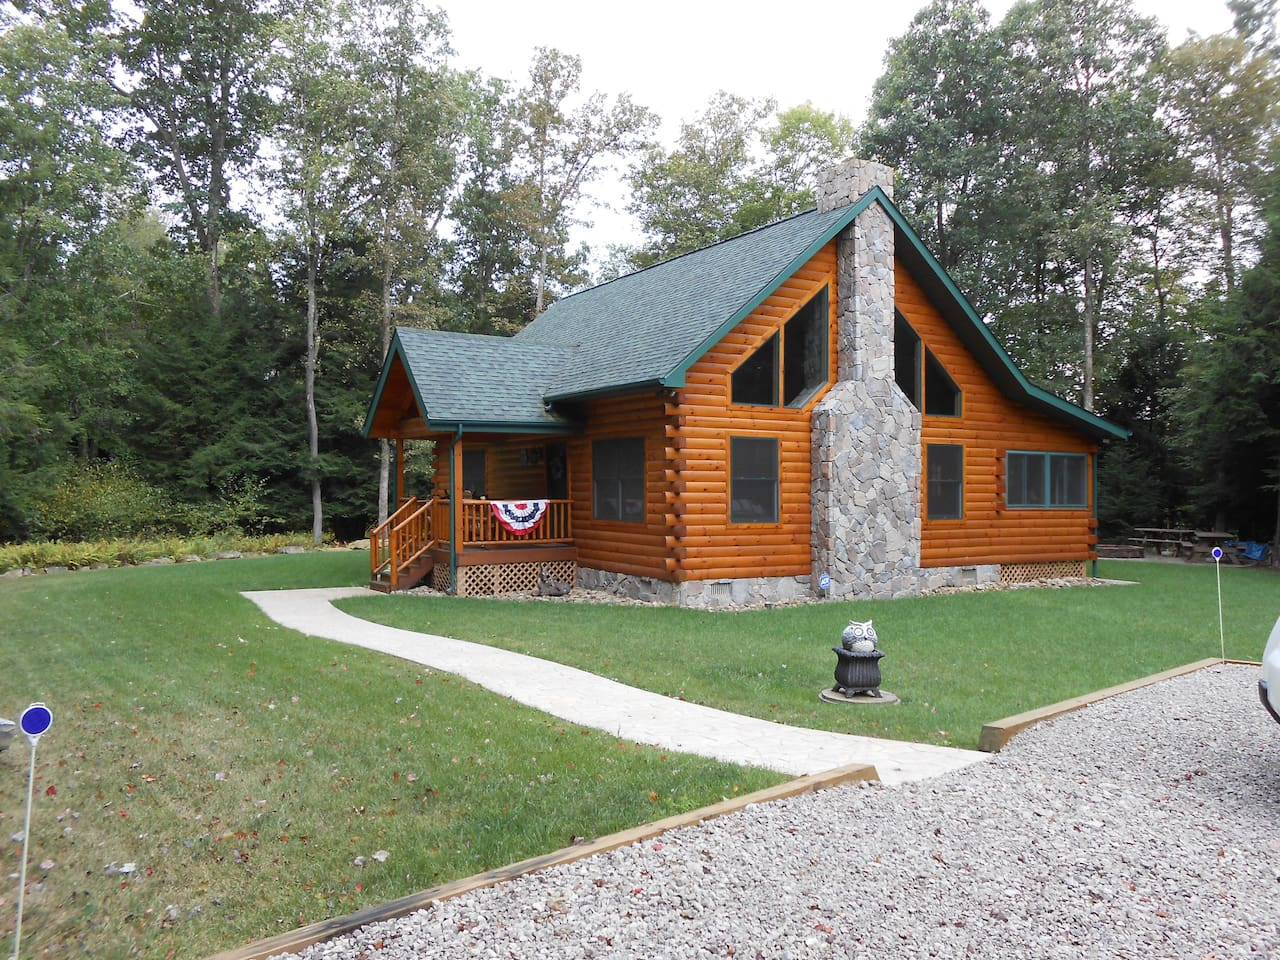 View of cabin from the parking area